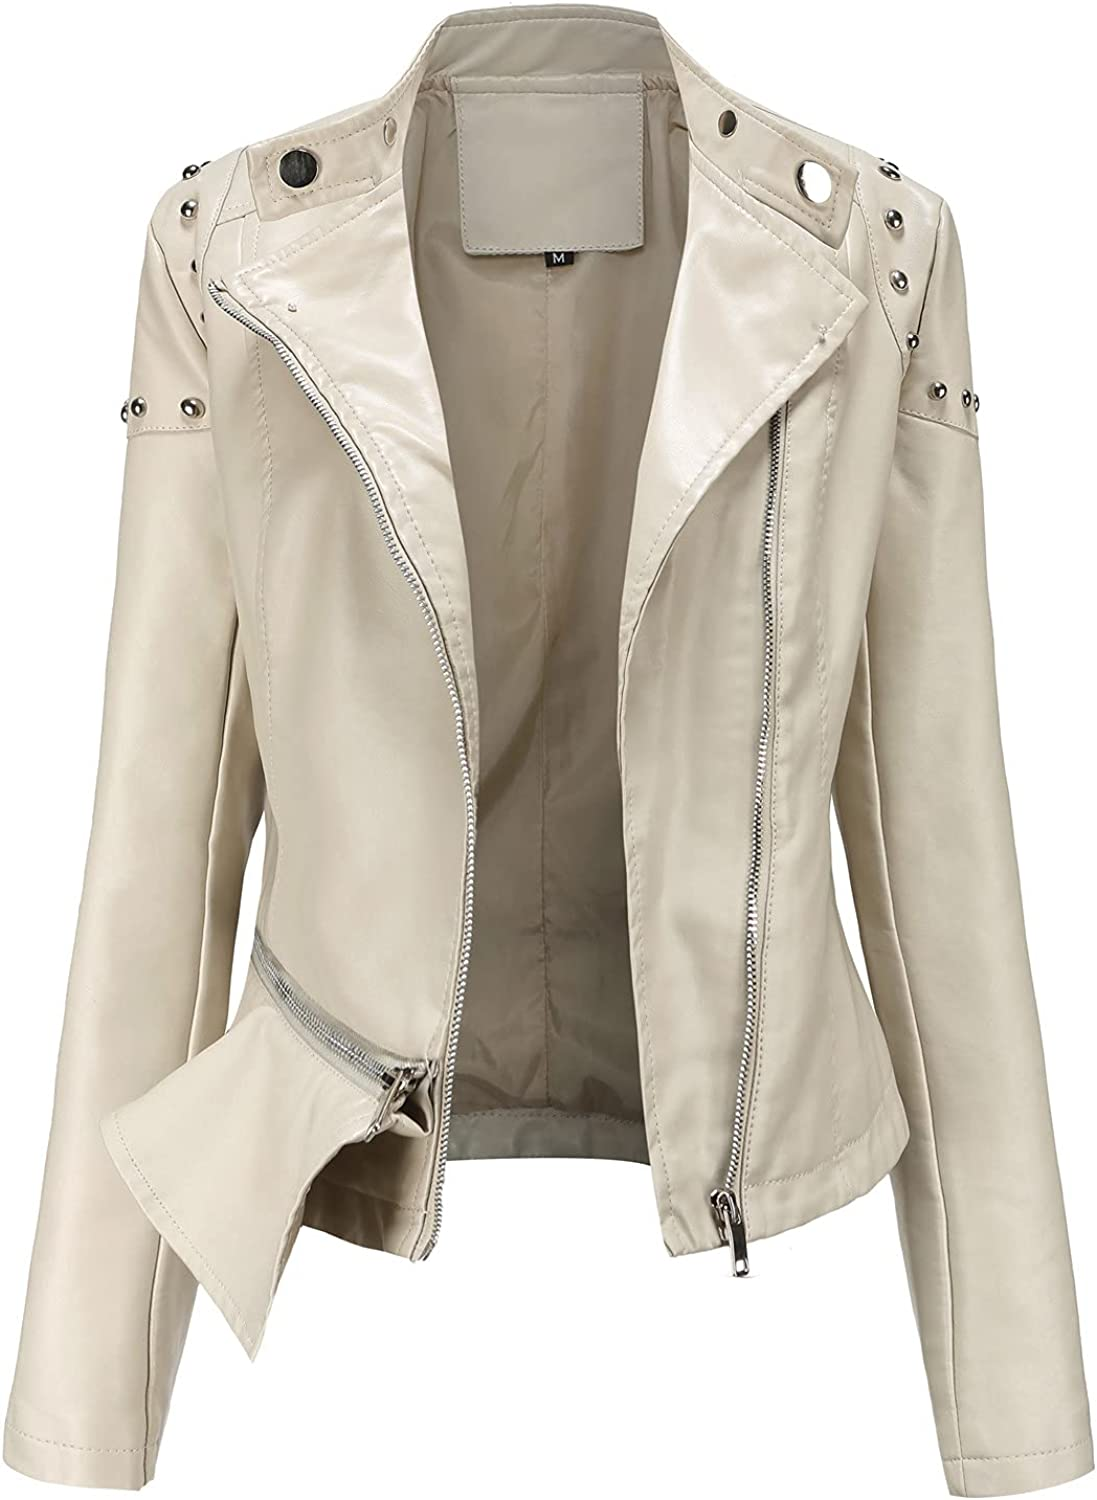 Women's Faux Leather Jacket Fashion Up Bombe Virginia Beach Mall Cropped Topics on TV Zip Regular